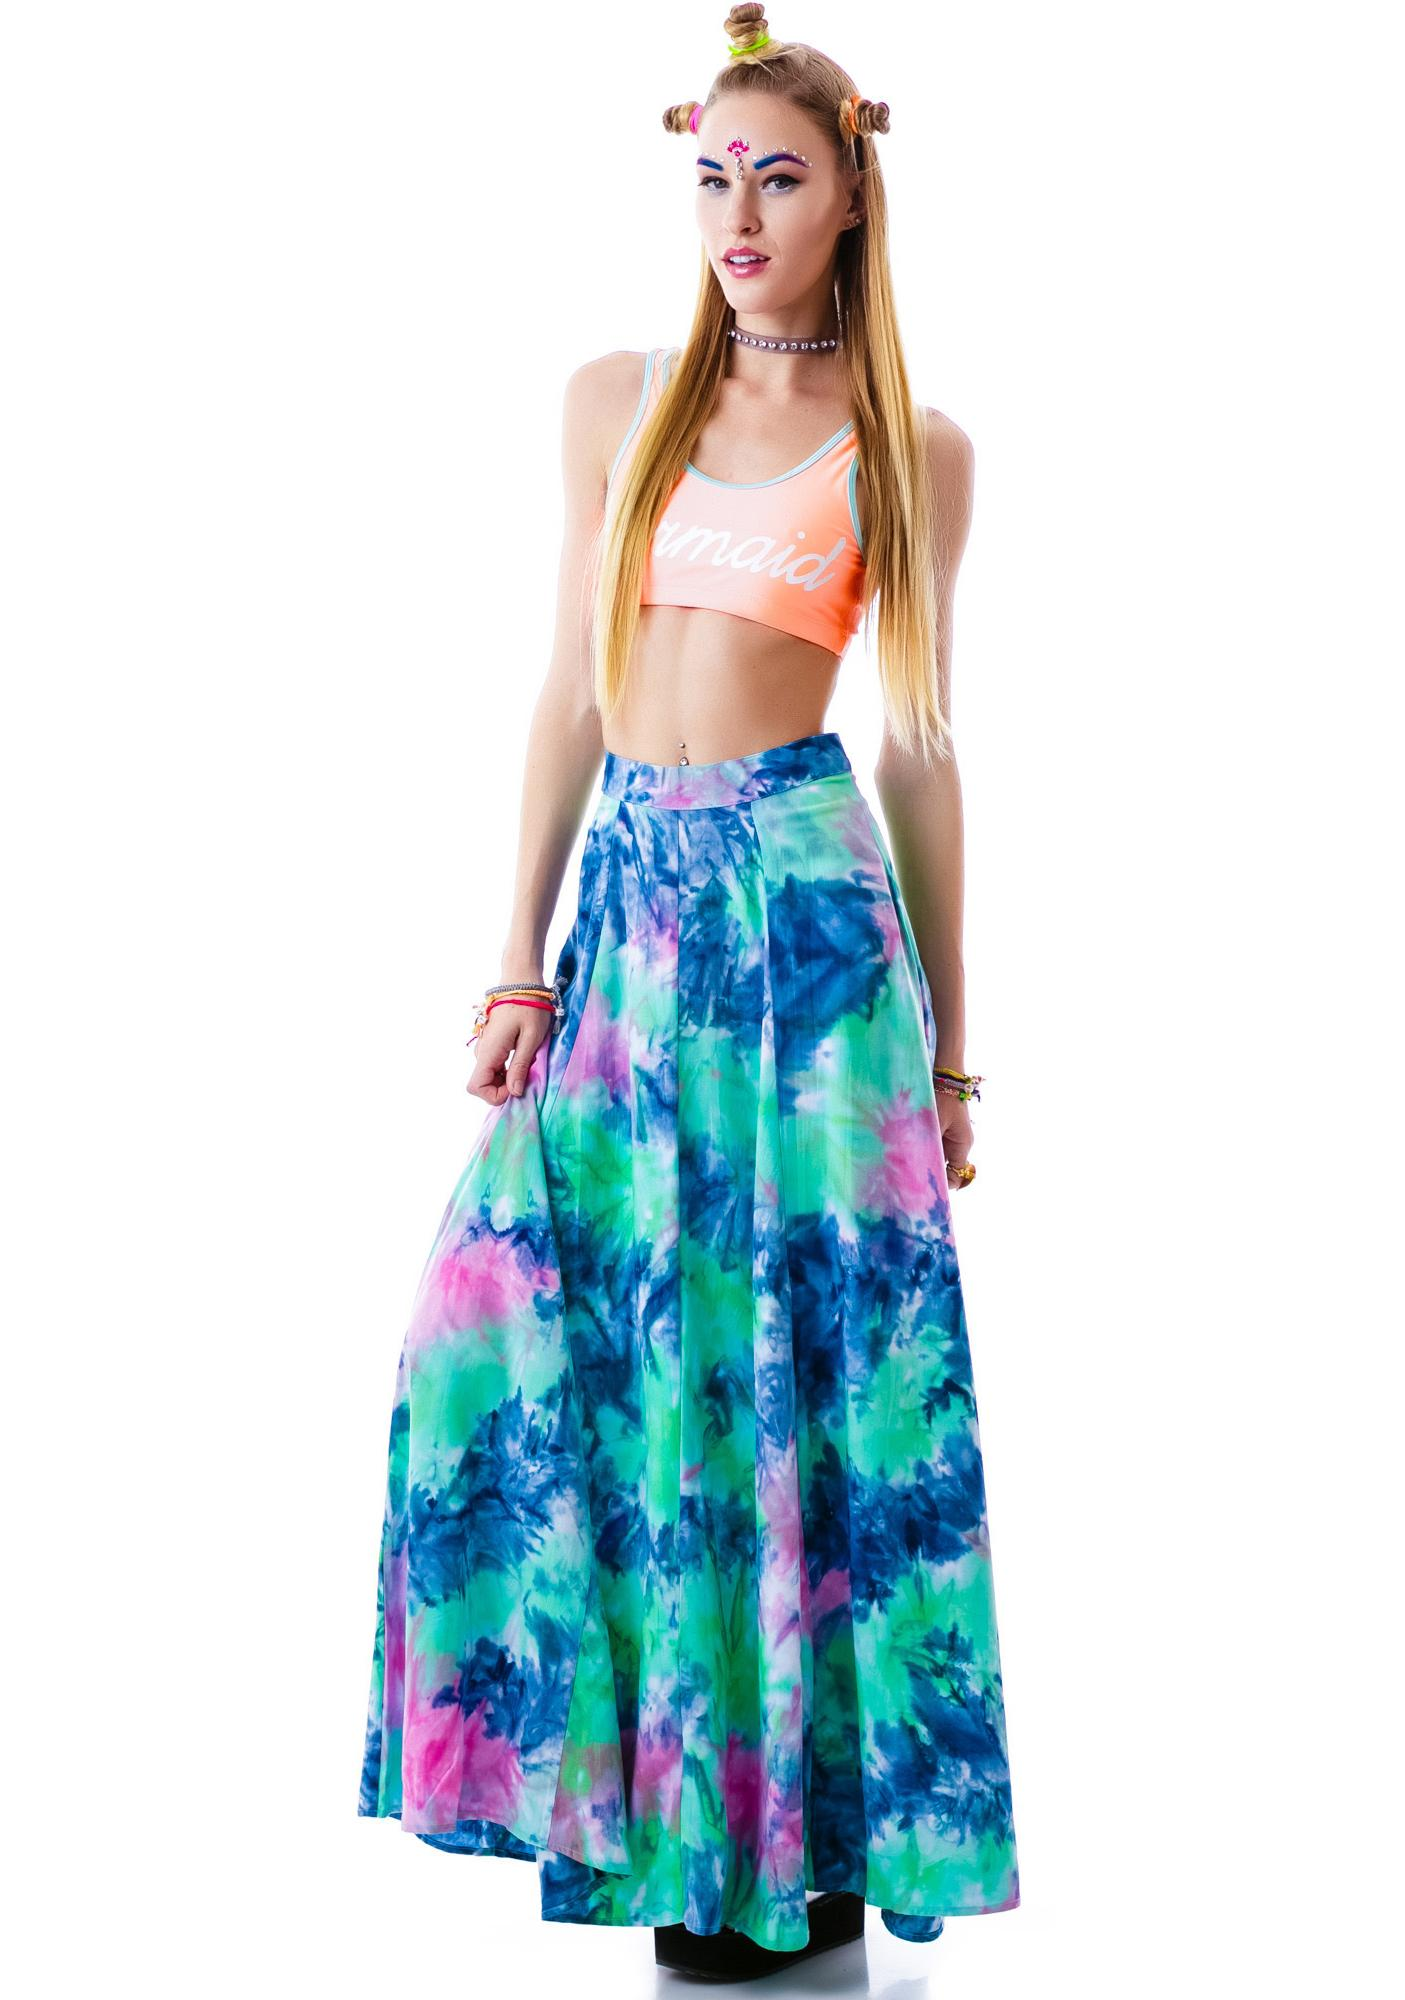 This Is A Love Song Faded Skirt